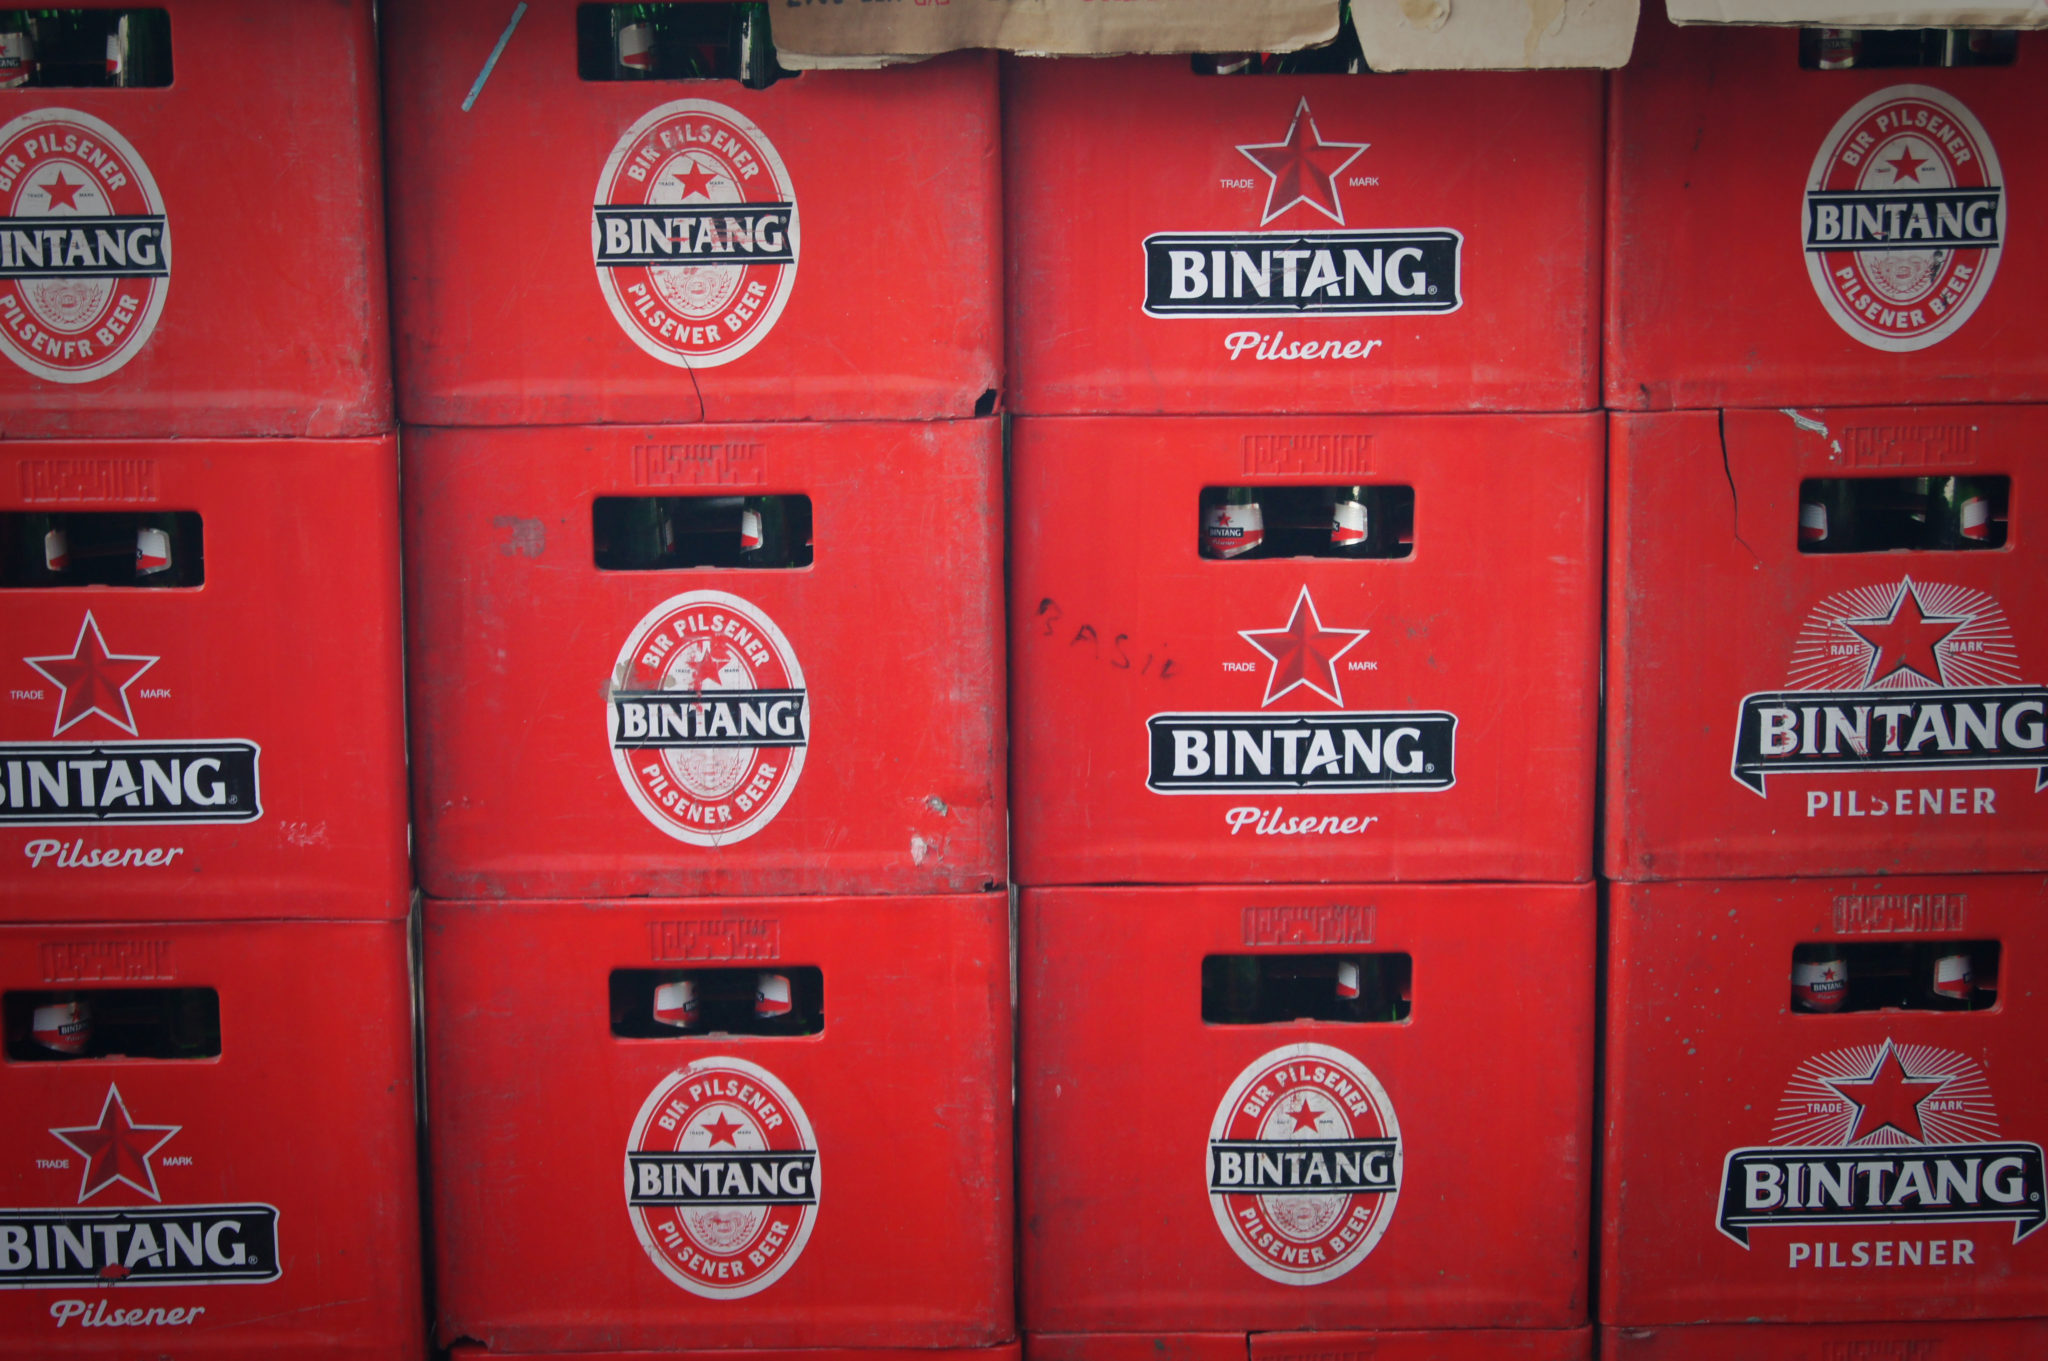 Bintang-Bier ist das Nationalbier in Indonesien